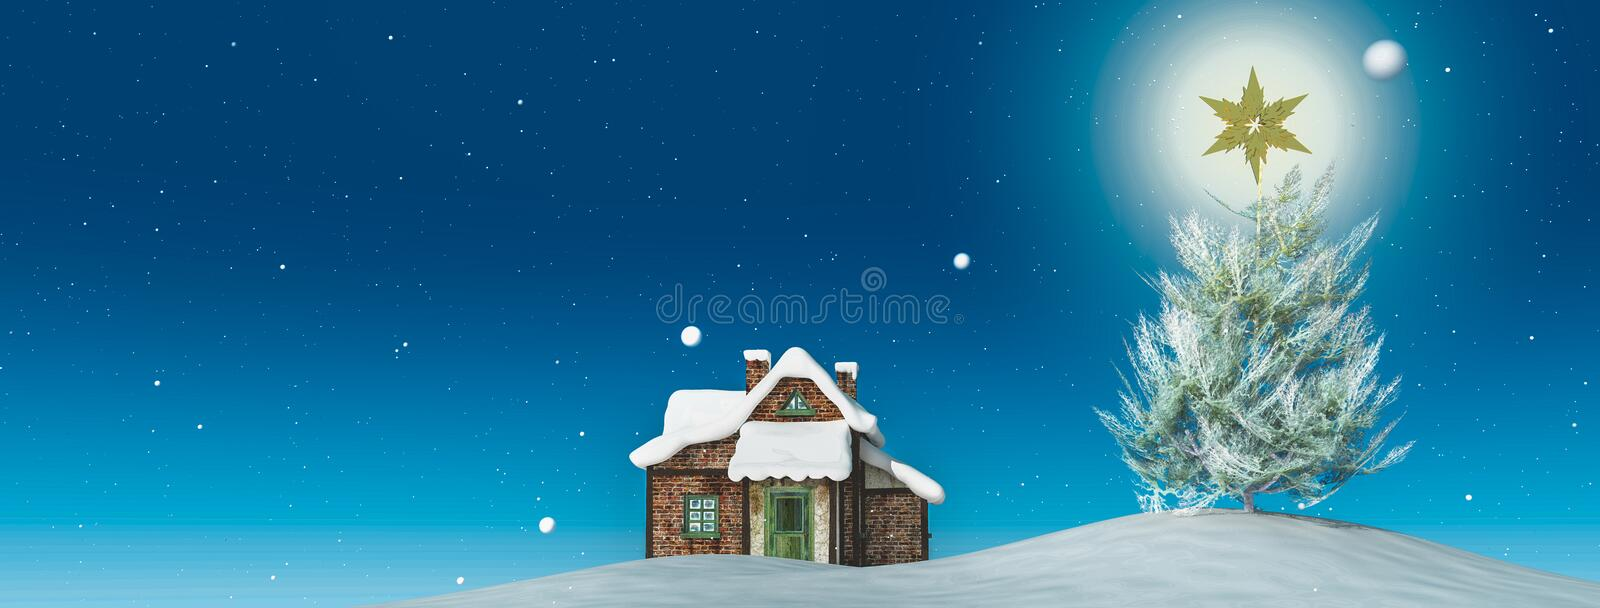 Christmas tree with a star royalty free illustration